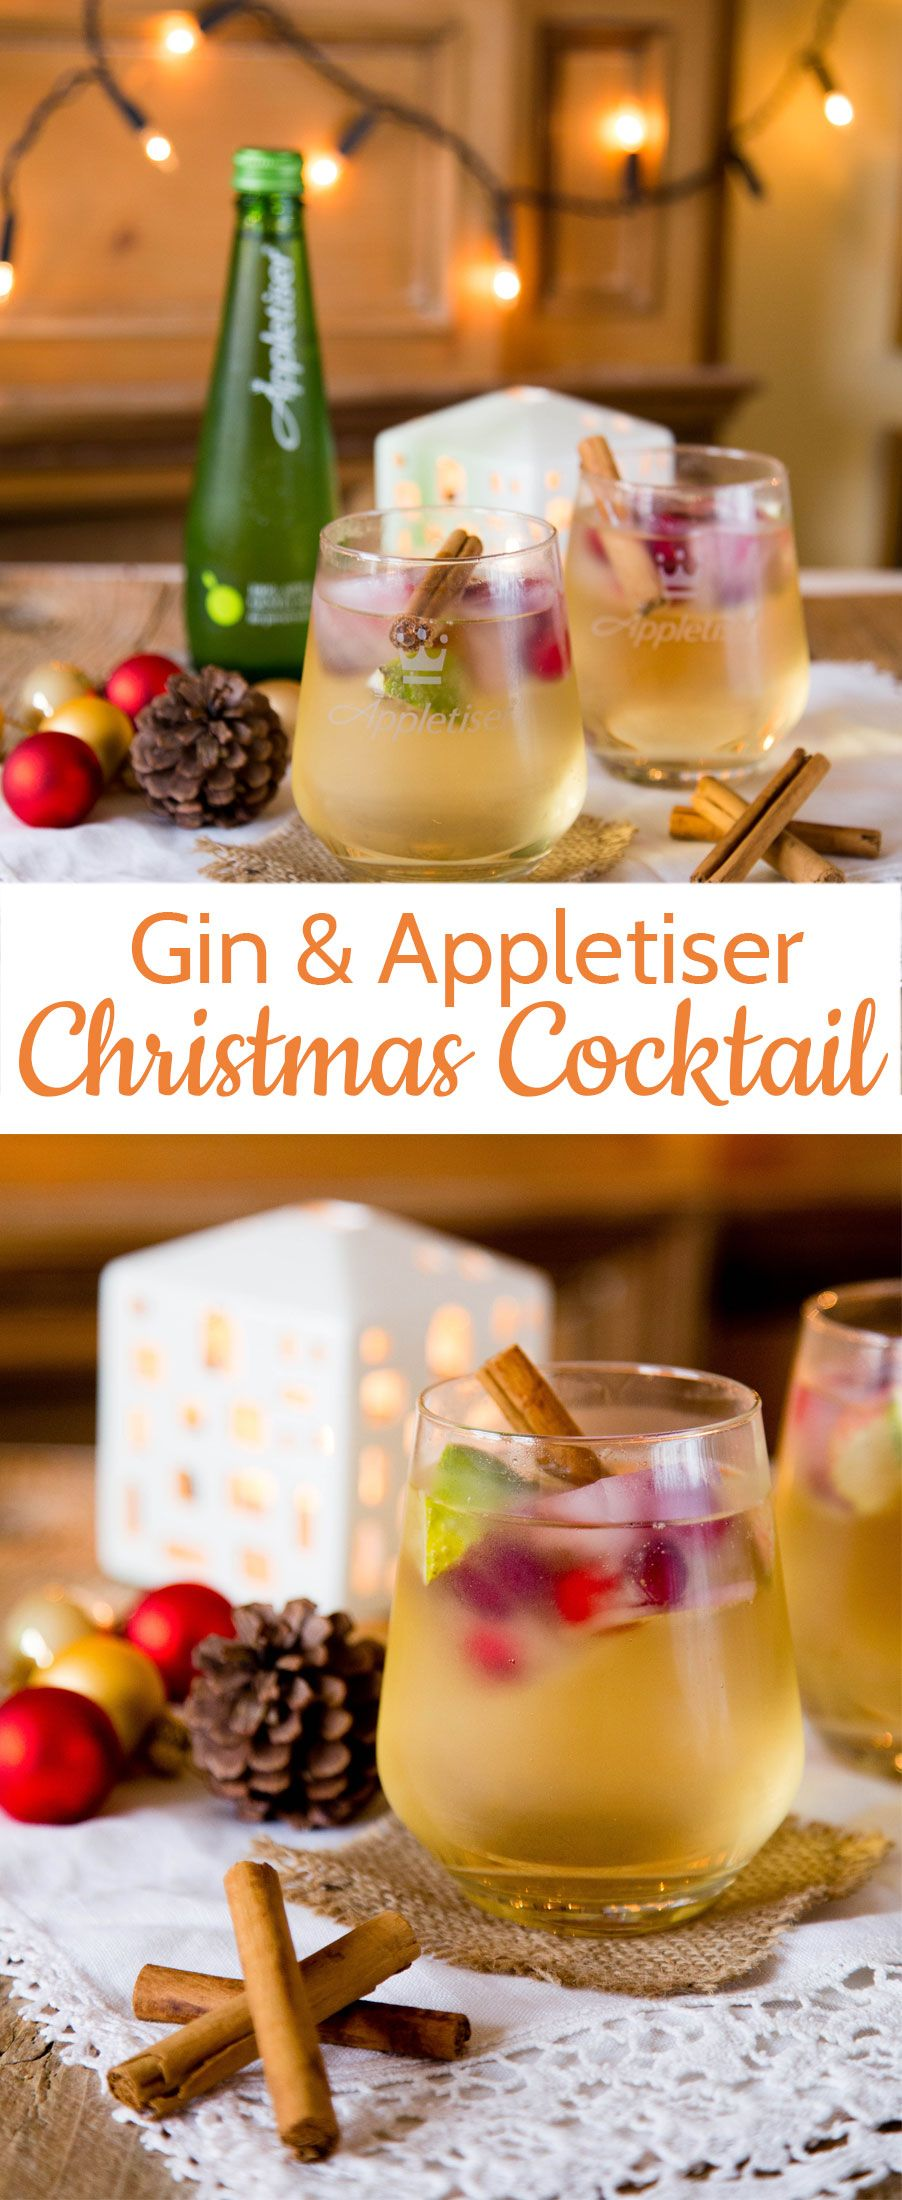 Gin Appletiser A Refreshing Christmas Cocktail Recipe Christmas Party Food Xmas Food Christmas Cocktails